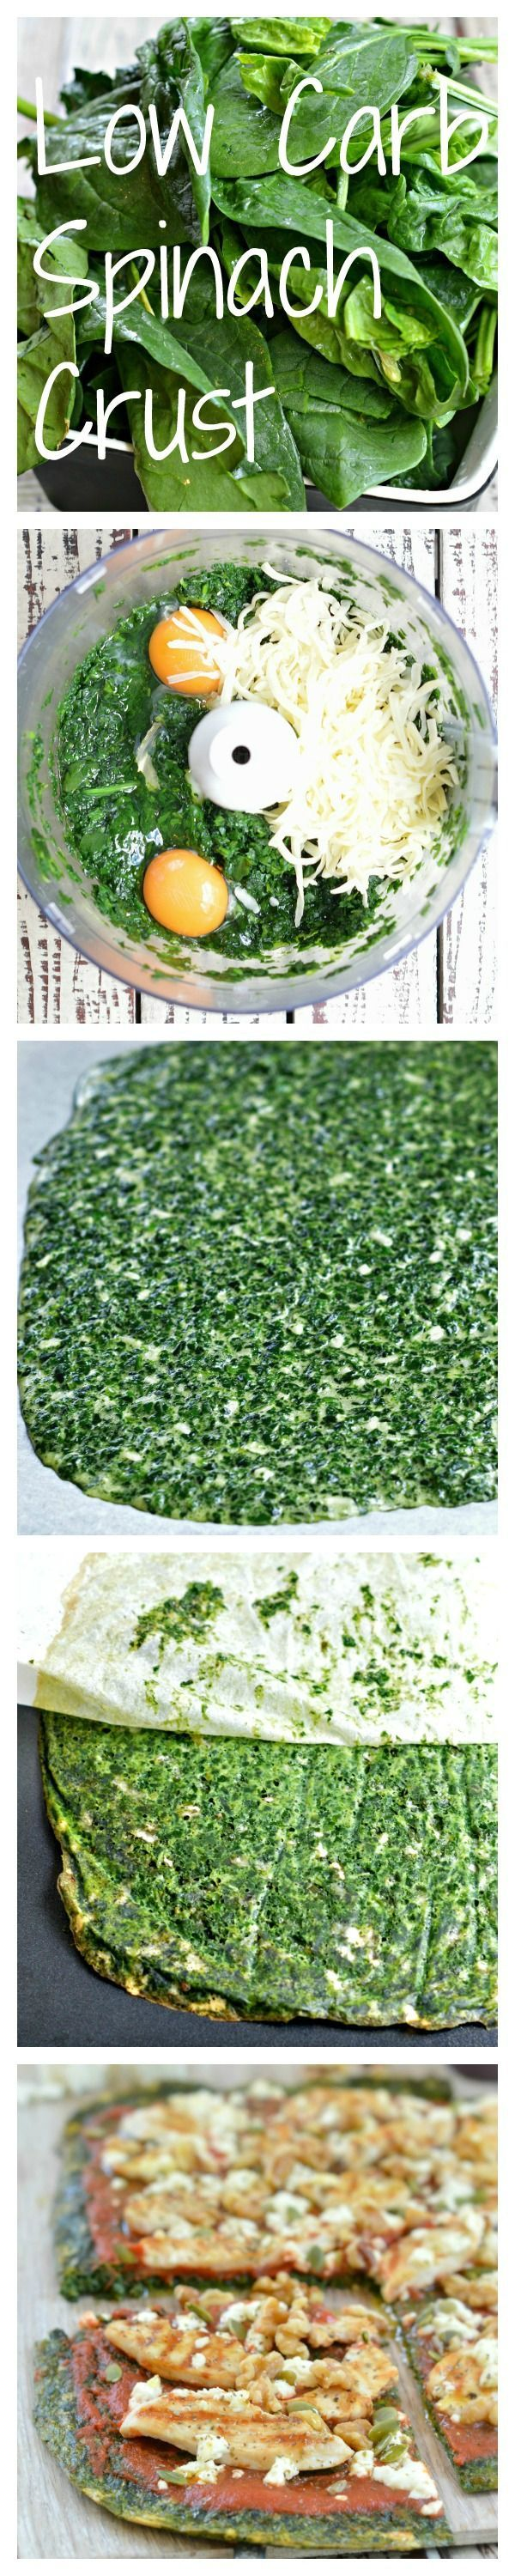 Low Carb Spinach Pizza Crust. A Paleo Pizza Crust free from gluten and flour. By www.sweetashoney.co